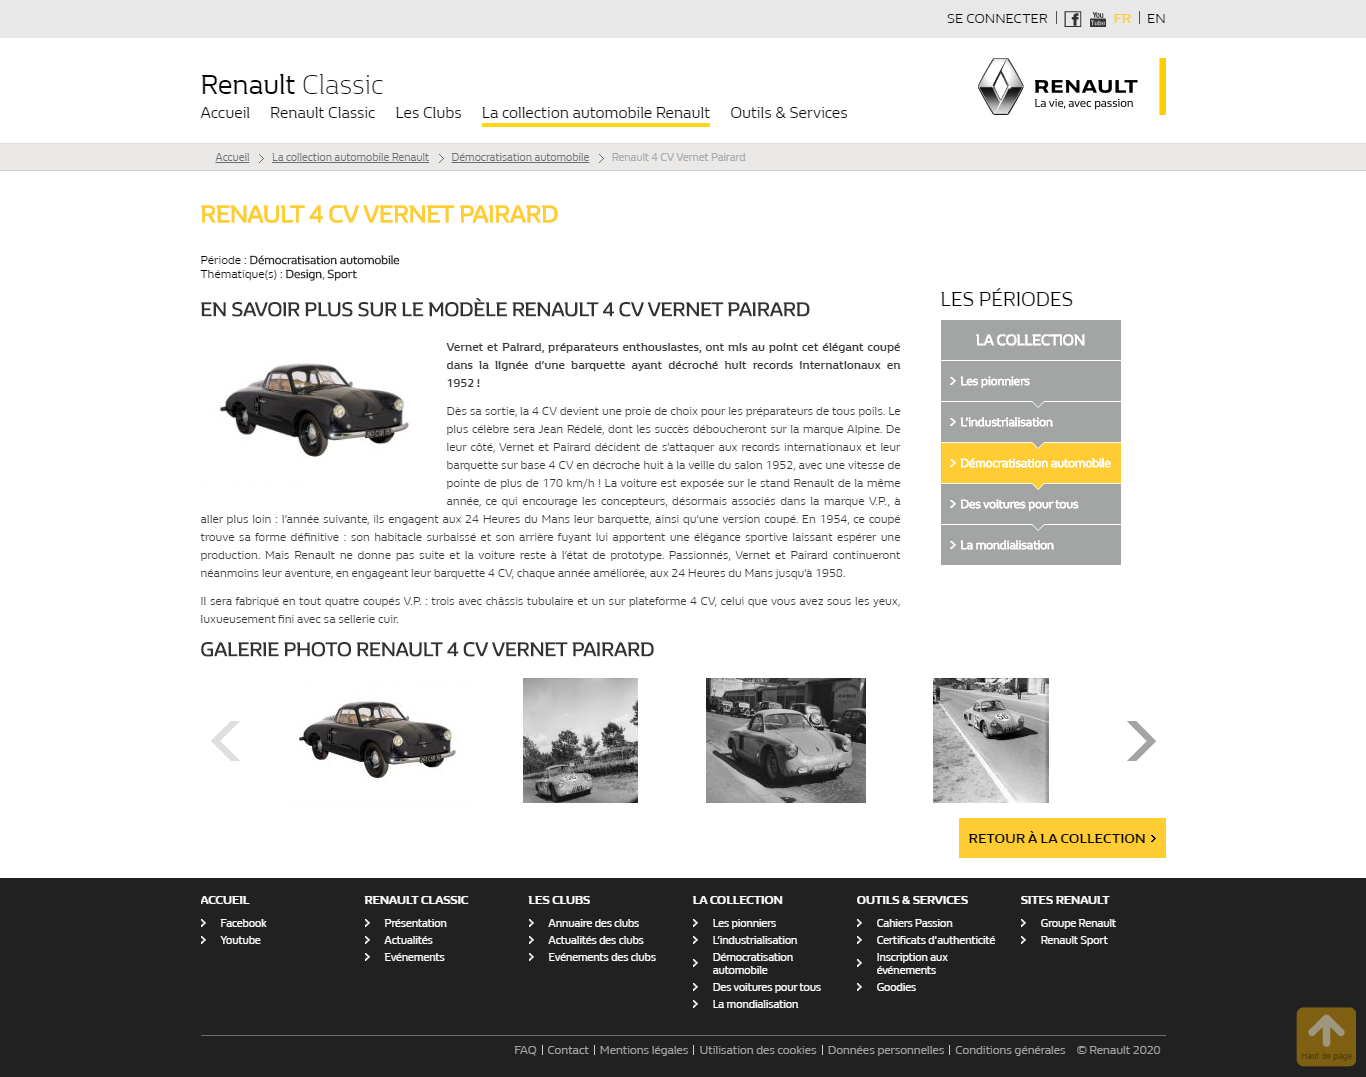 fr-renaultclassic-la-collection-automobile-renault-democratisation-automobile-renault-4-cv-vernet-pairard-2020-03-29-03_14_25